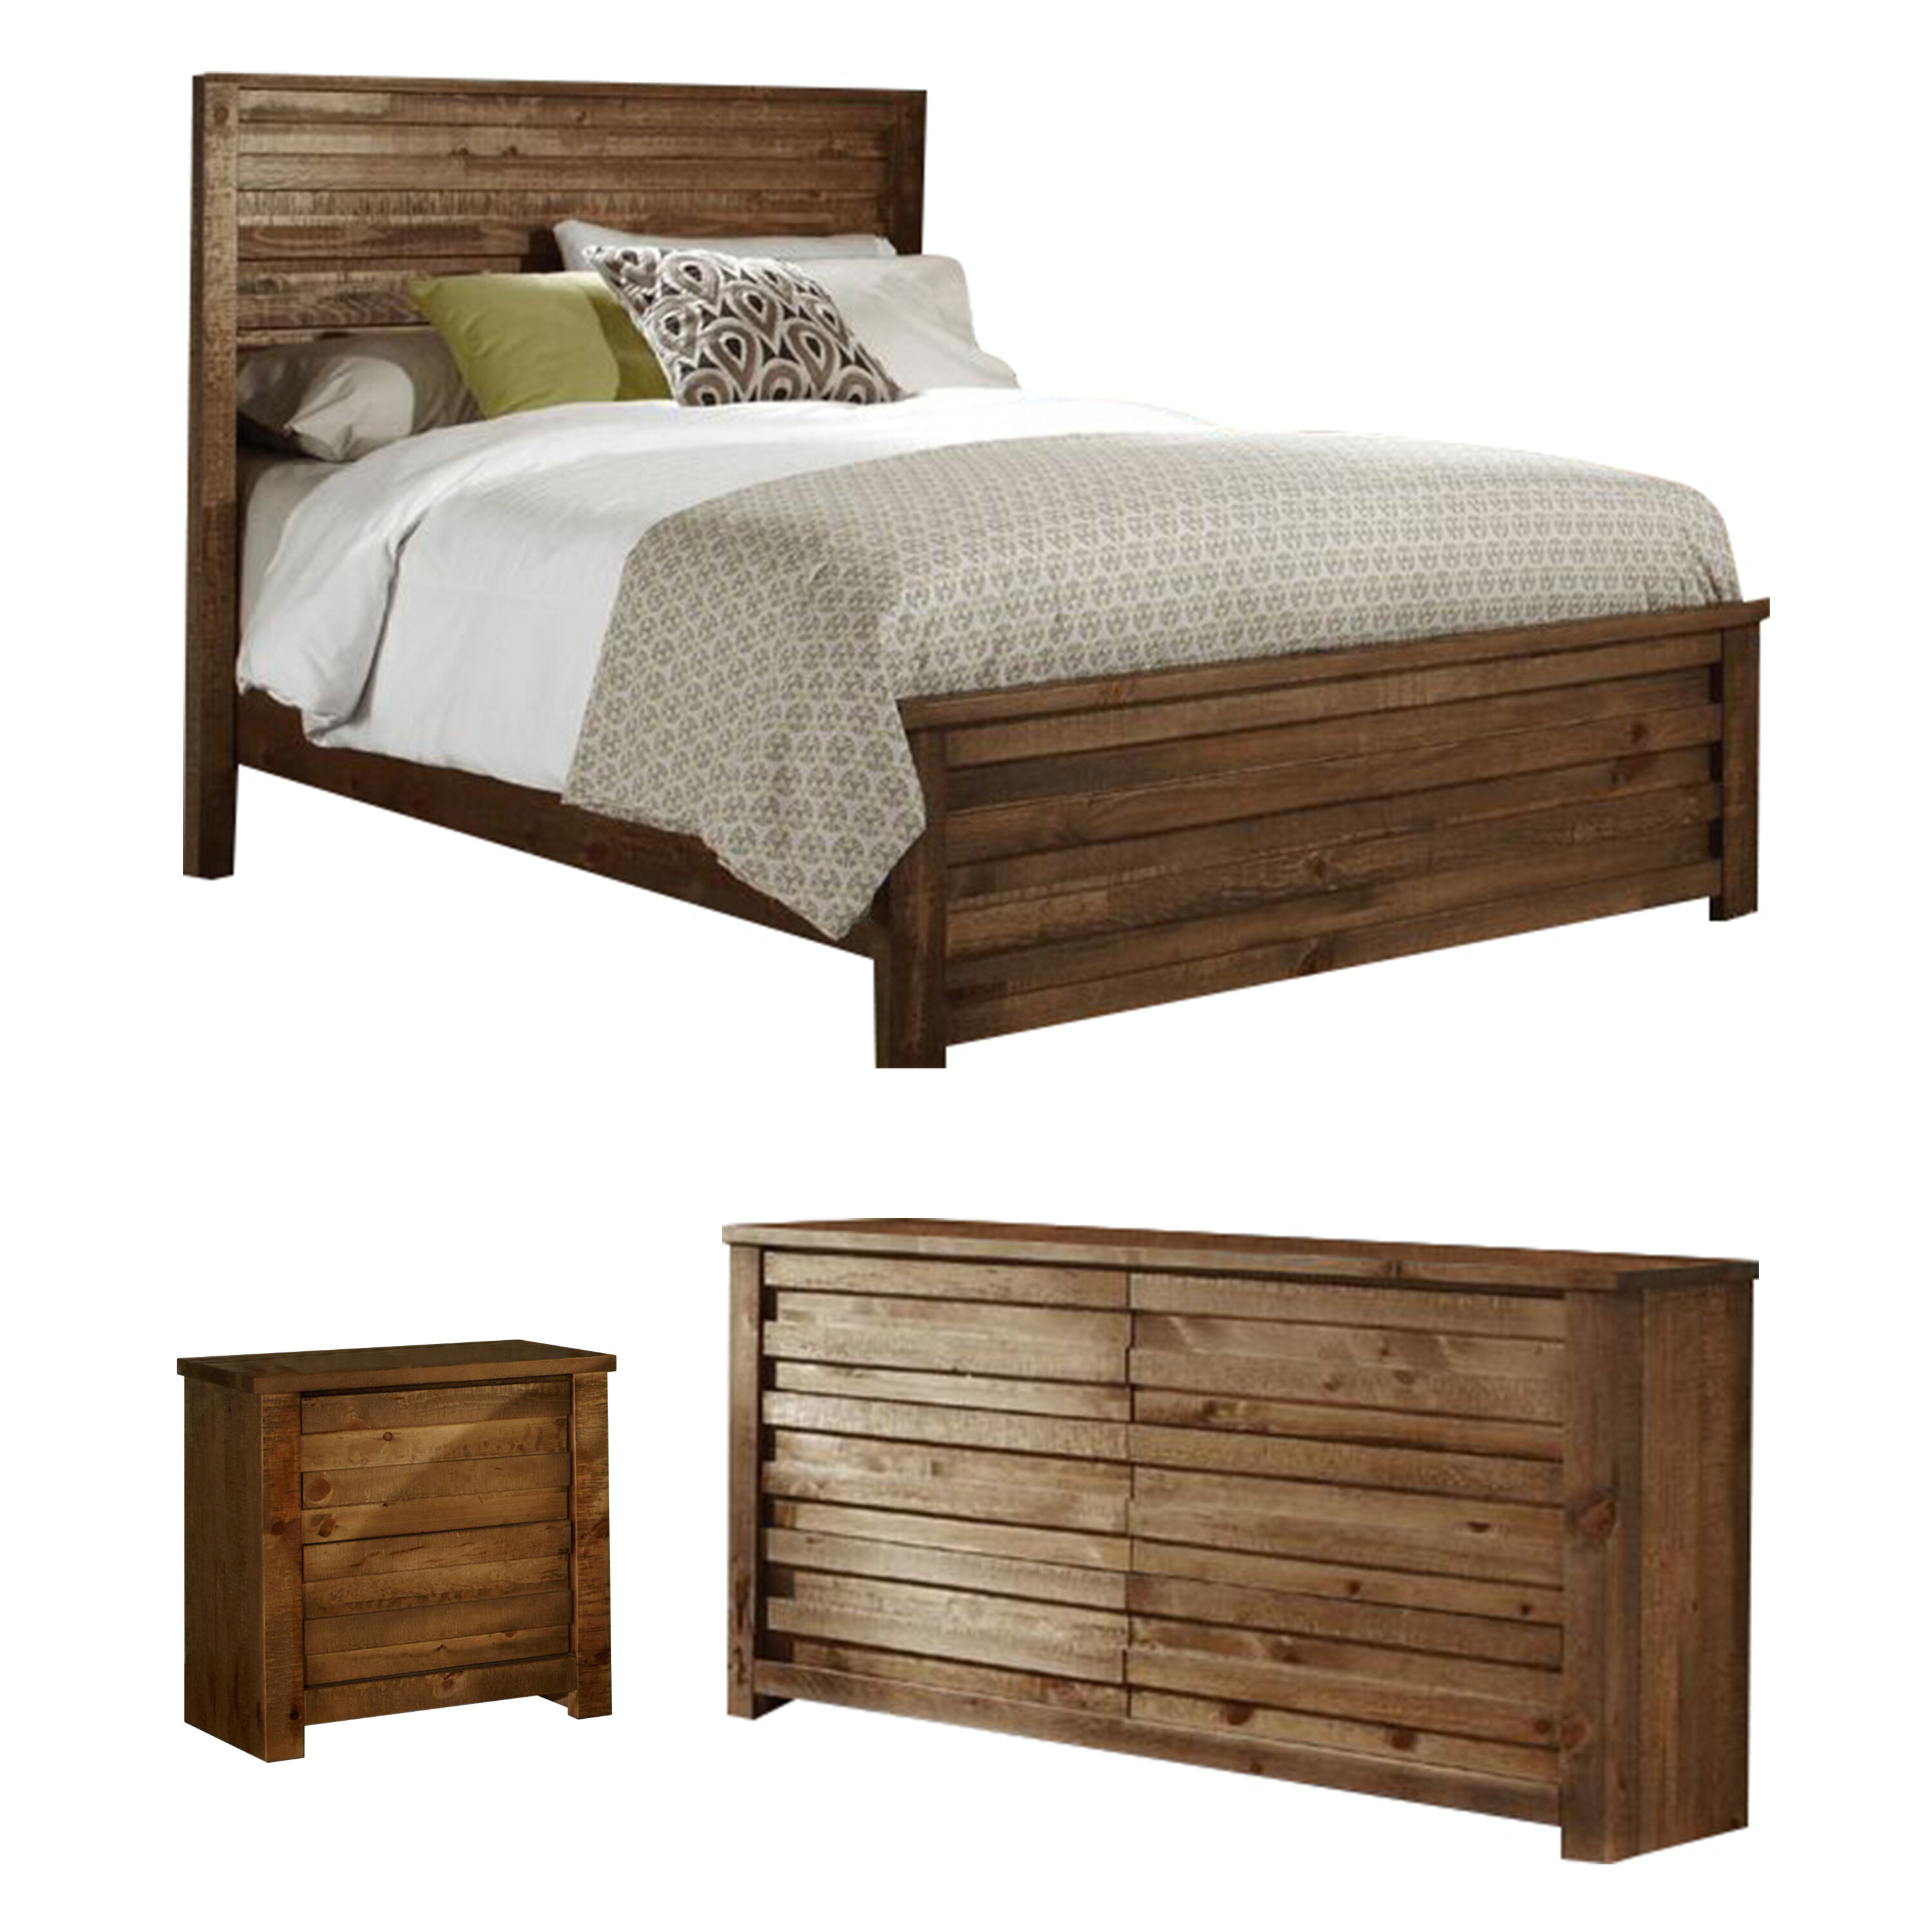 bedroom my queen asheville place driftwood furniture products bed room set